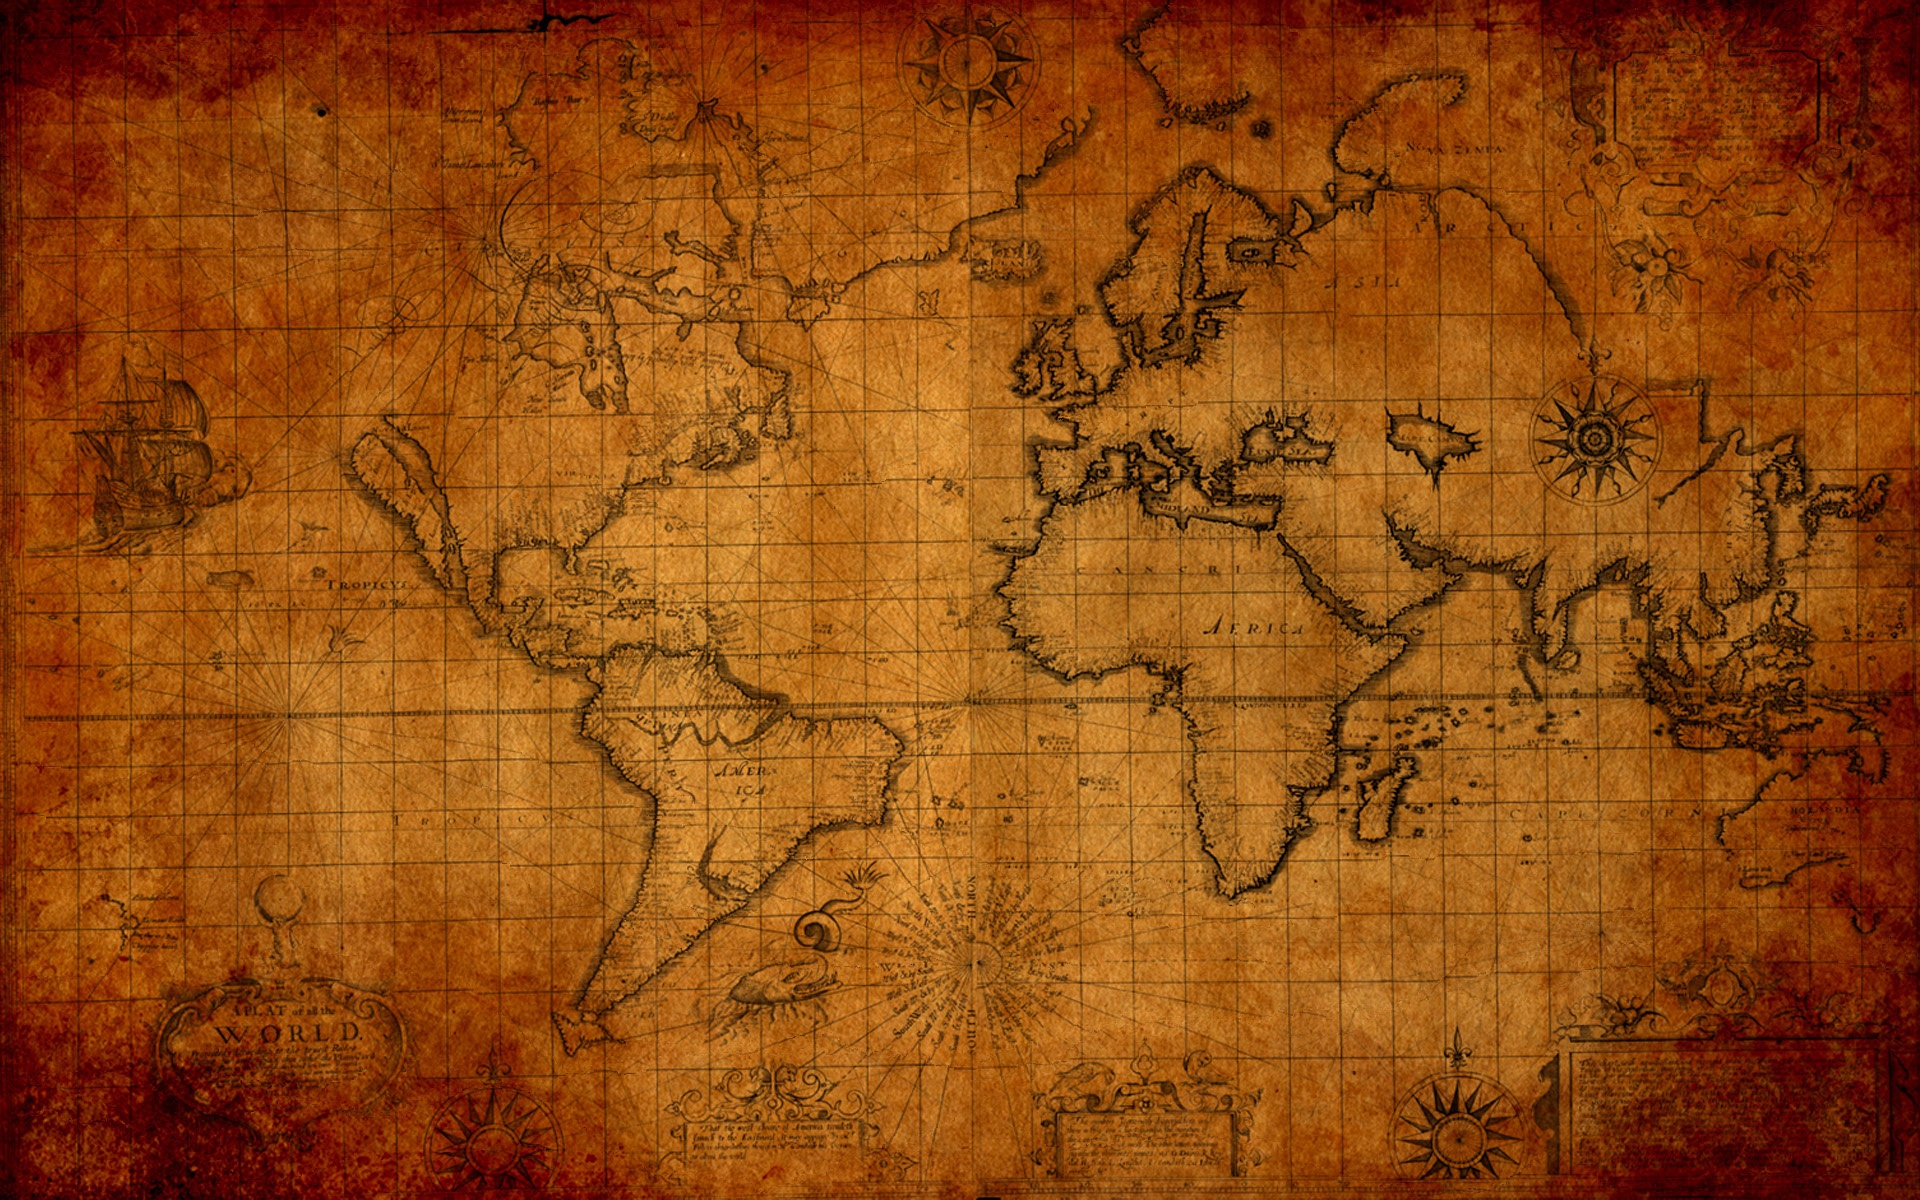 Antique world map wallpaper sf wallpaper vintage world map background jpg 3931 old world map travel with src gumiabroncs Choice Image